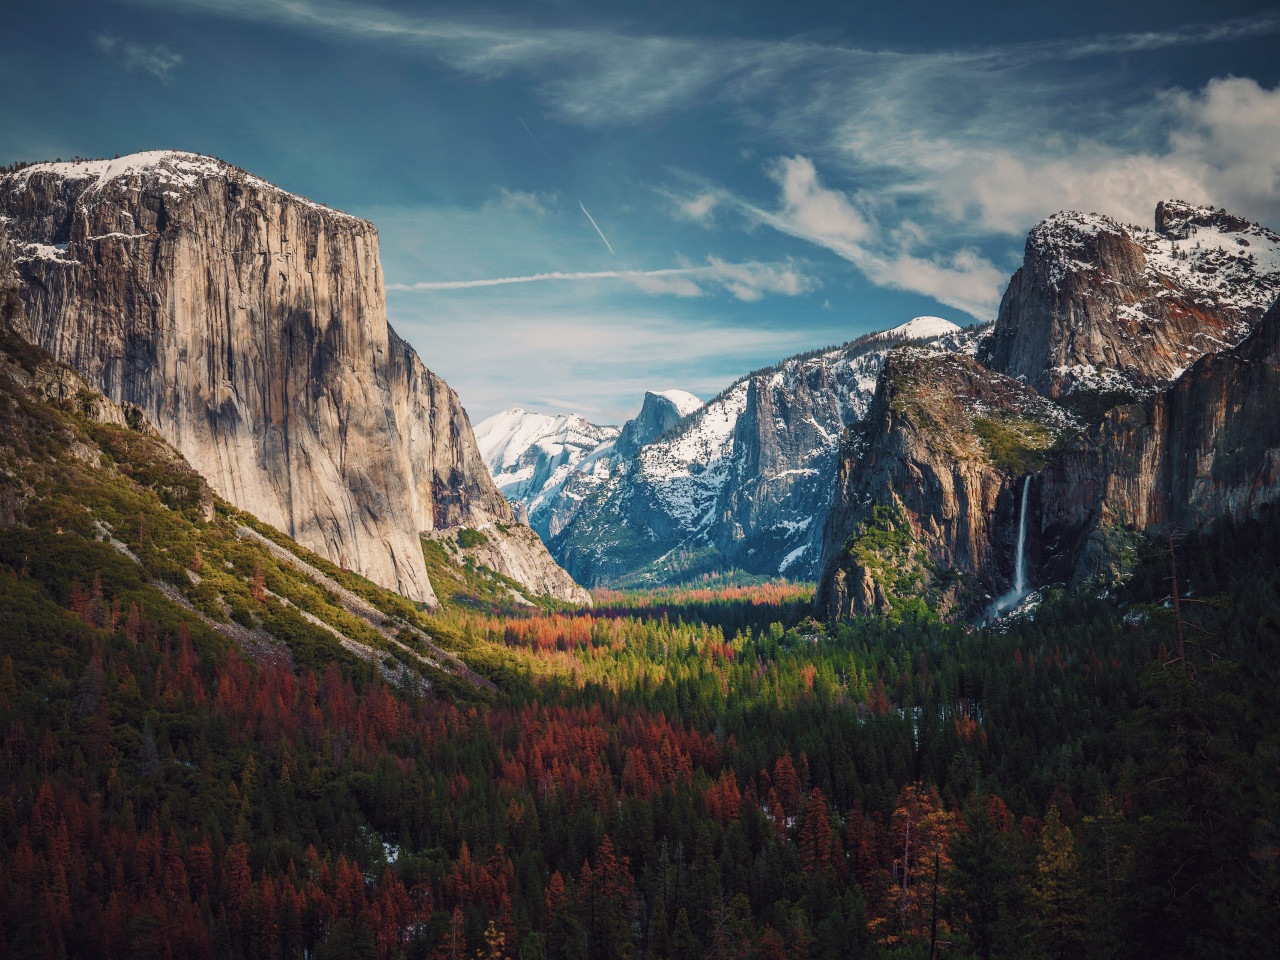 Best View from Yosemite | 1280x960 wallpaper